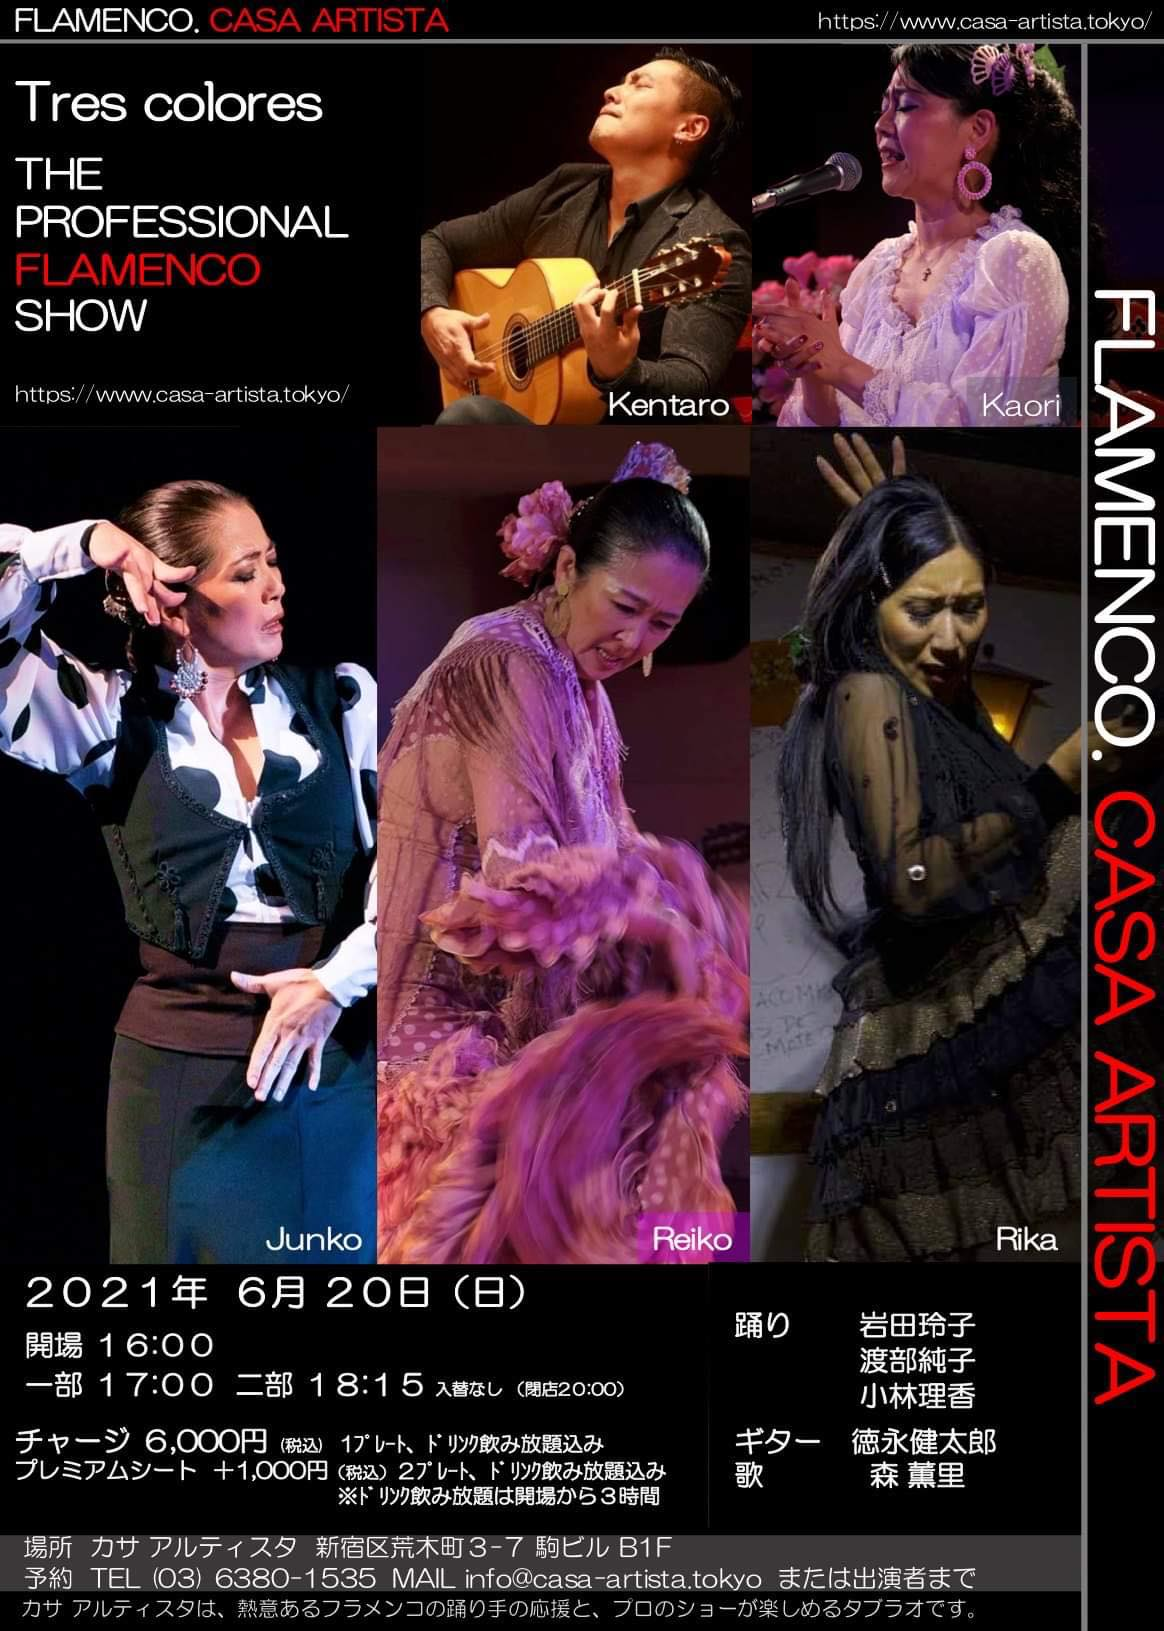 Tres colores THE PROFESSIONAL FLAMENCO SHOW @ カサ・アルティスタ